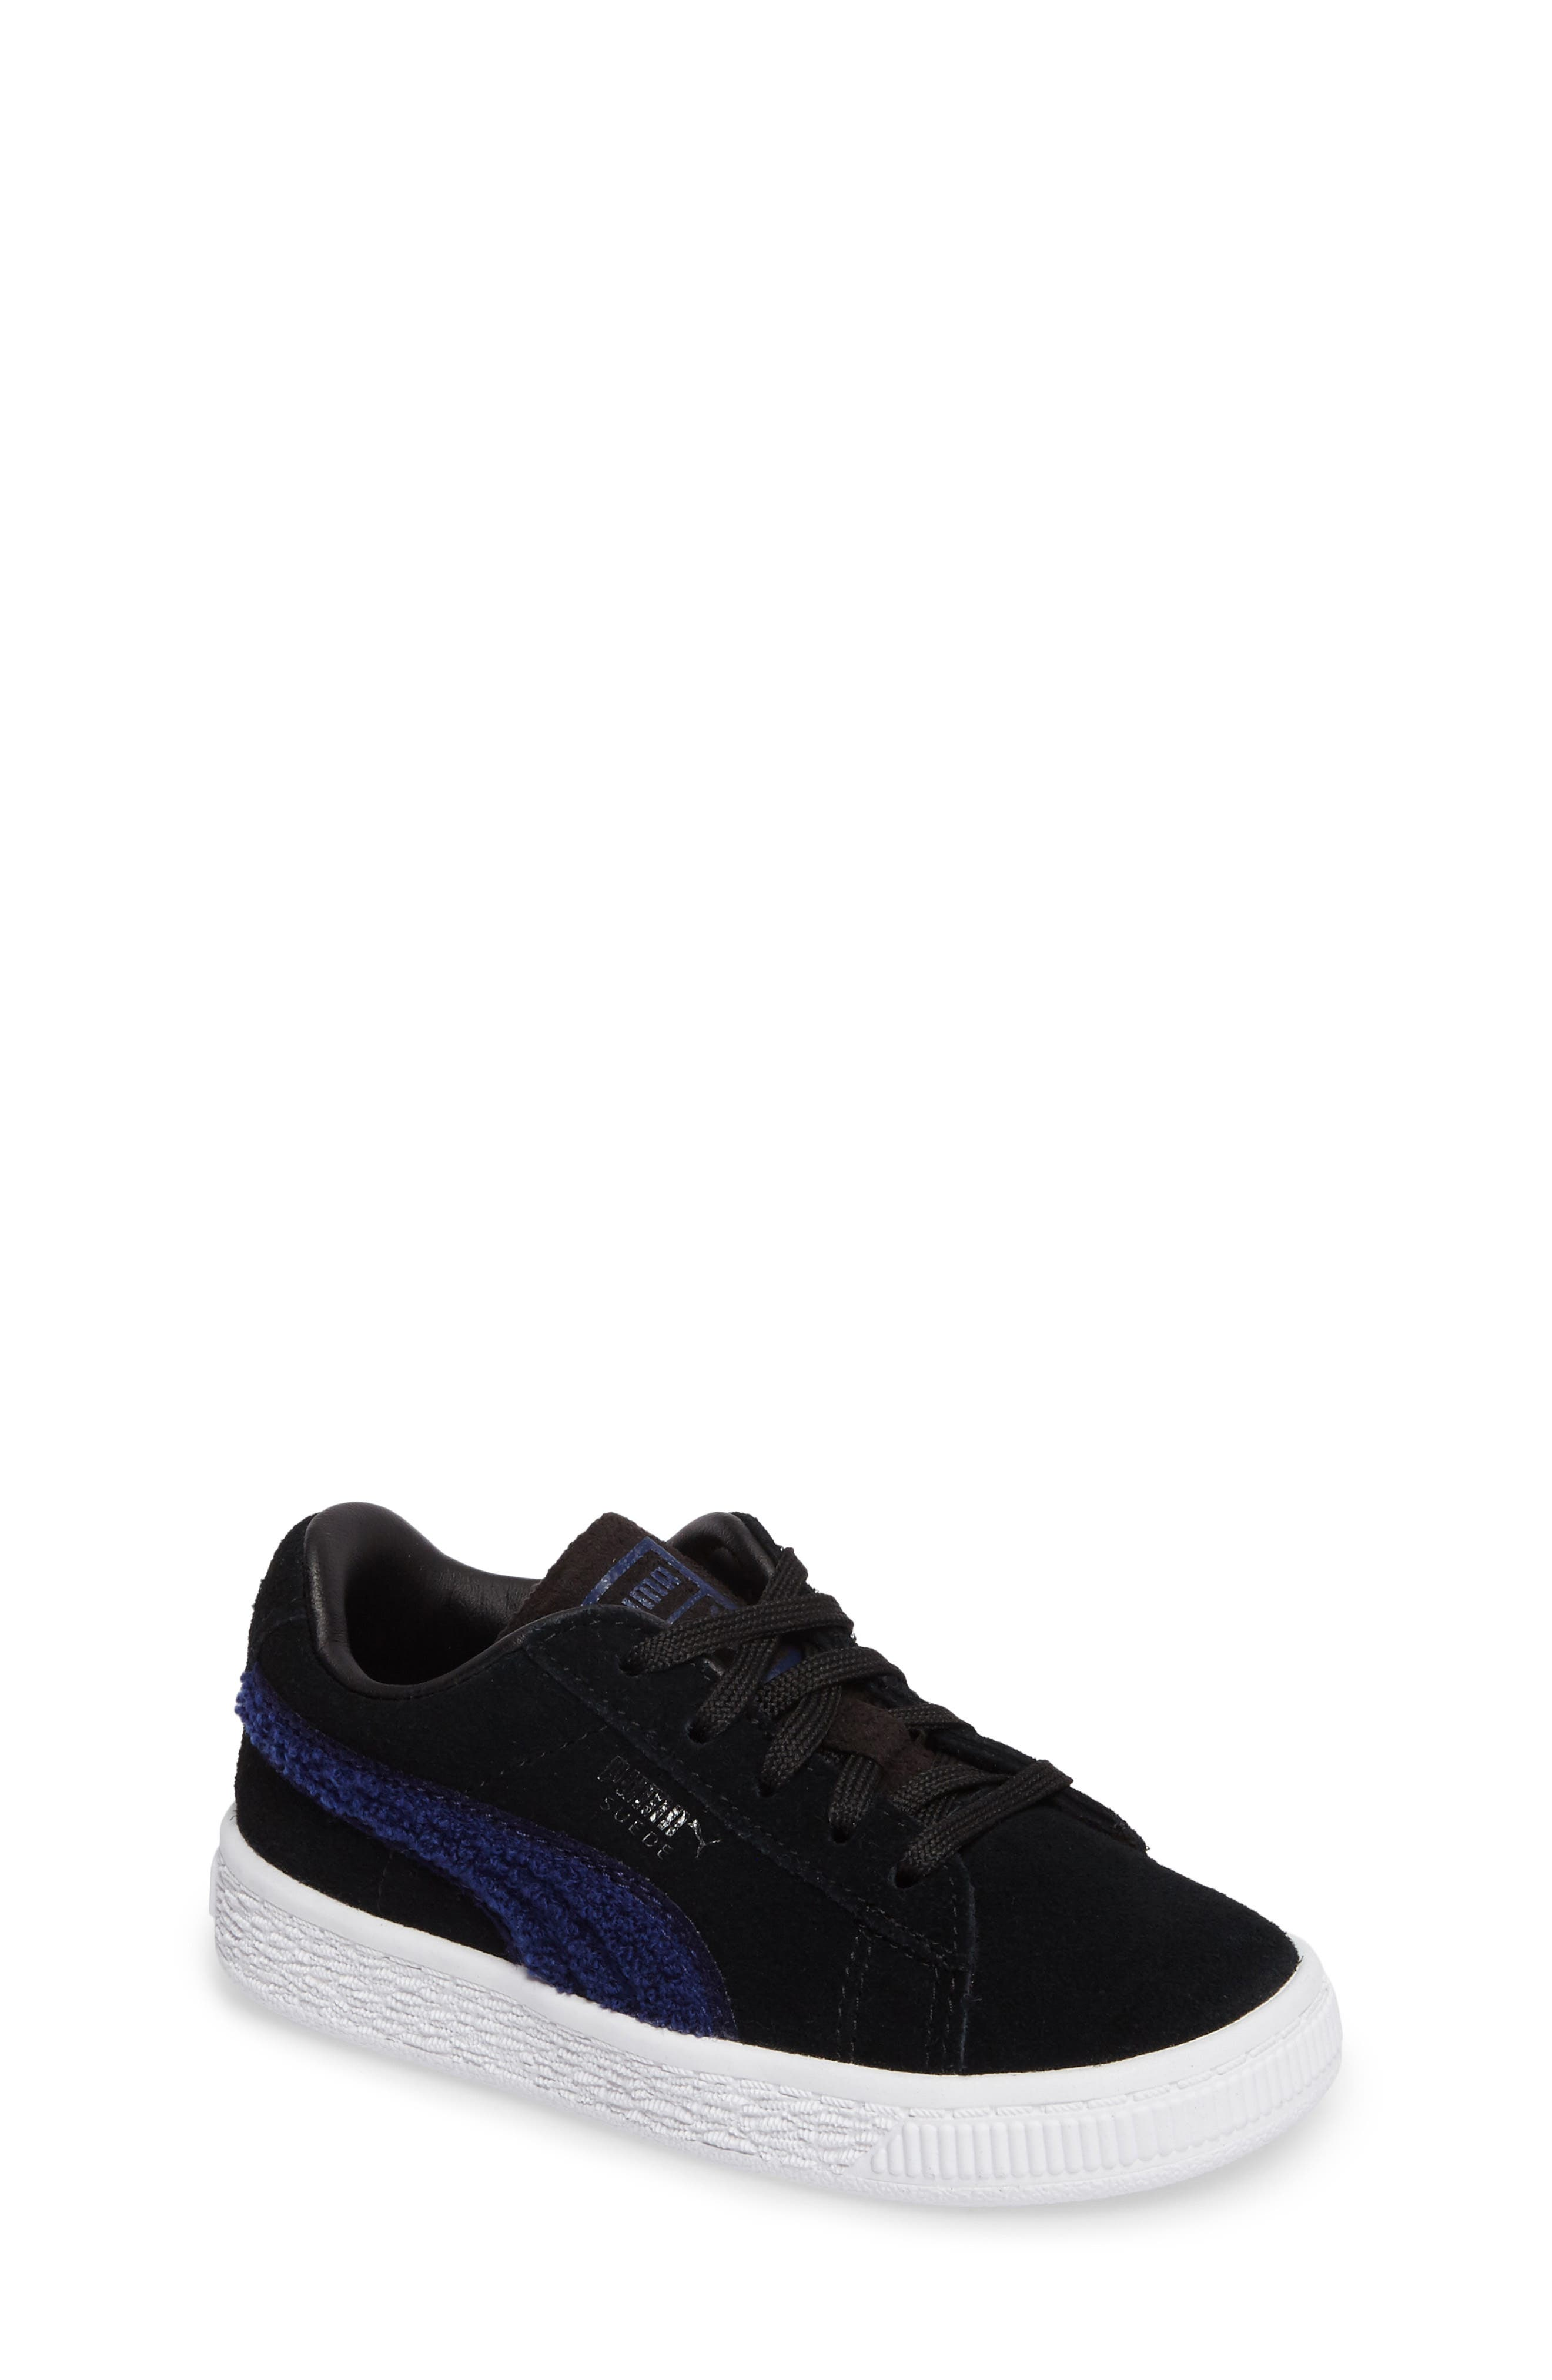 Classic Terry Sneaker,                             Main thumbnail 1, color,                             001